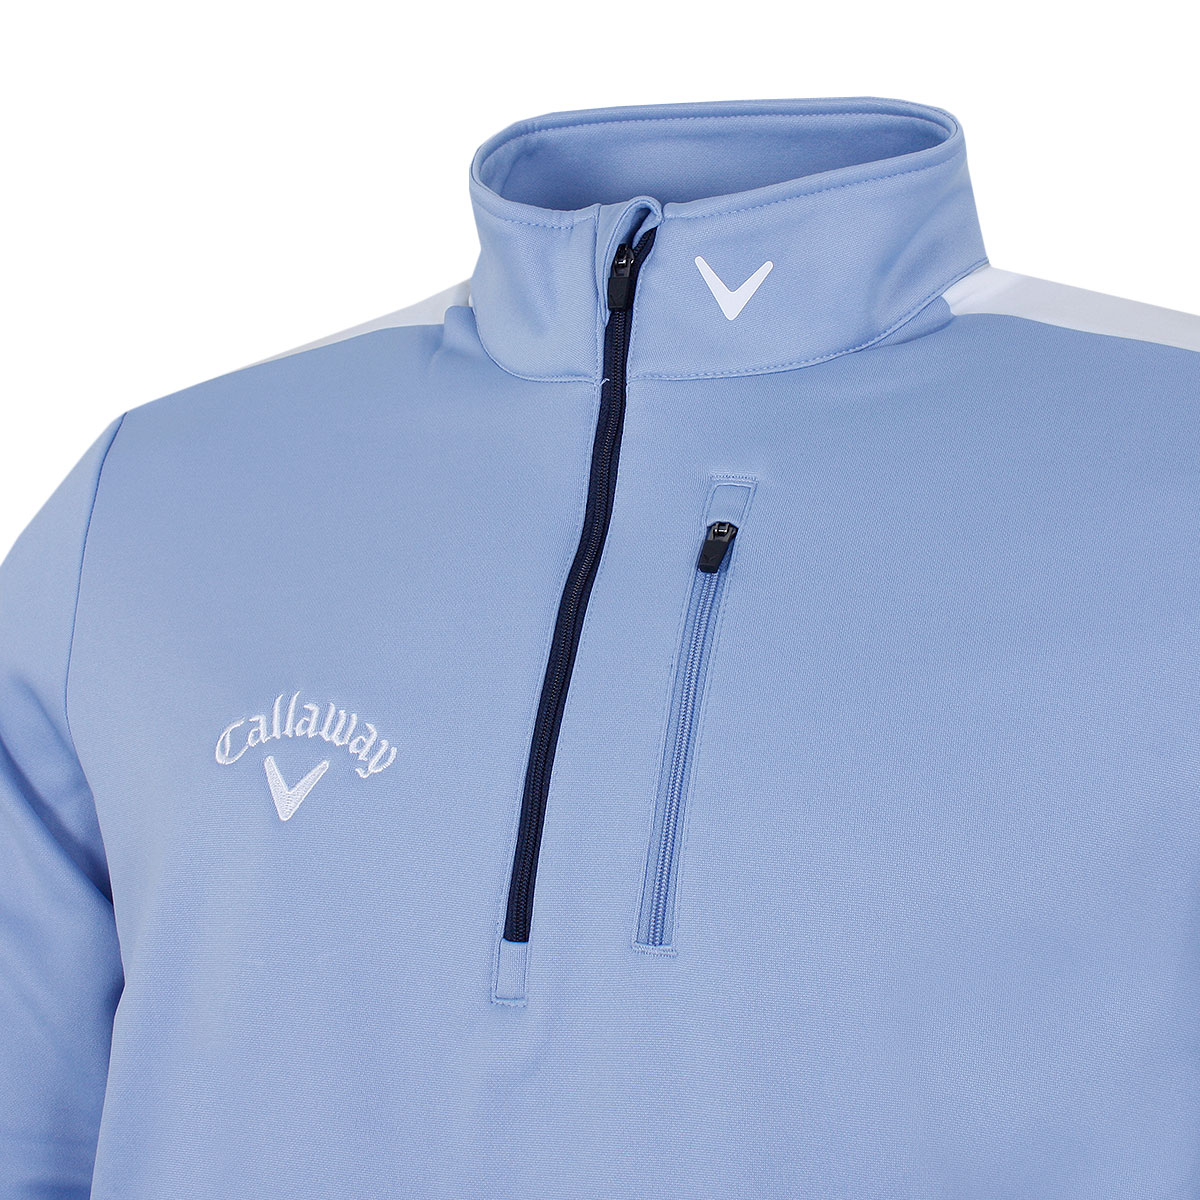 Callaway-Mens-Opti-Therm-Colour-Block-1-4-Zip-Golf-Sweater-50-OFF-RRP thumbnail 4